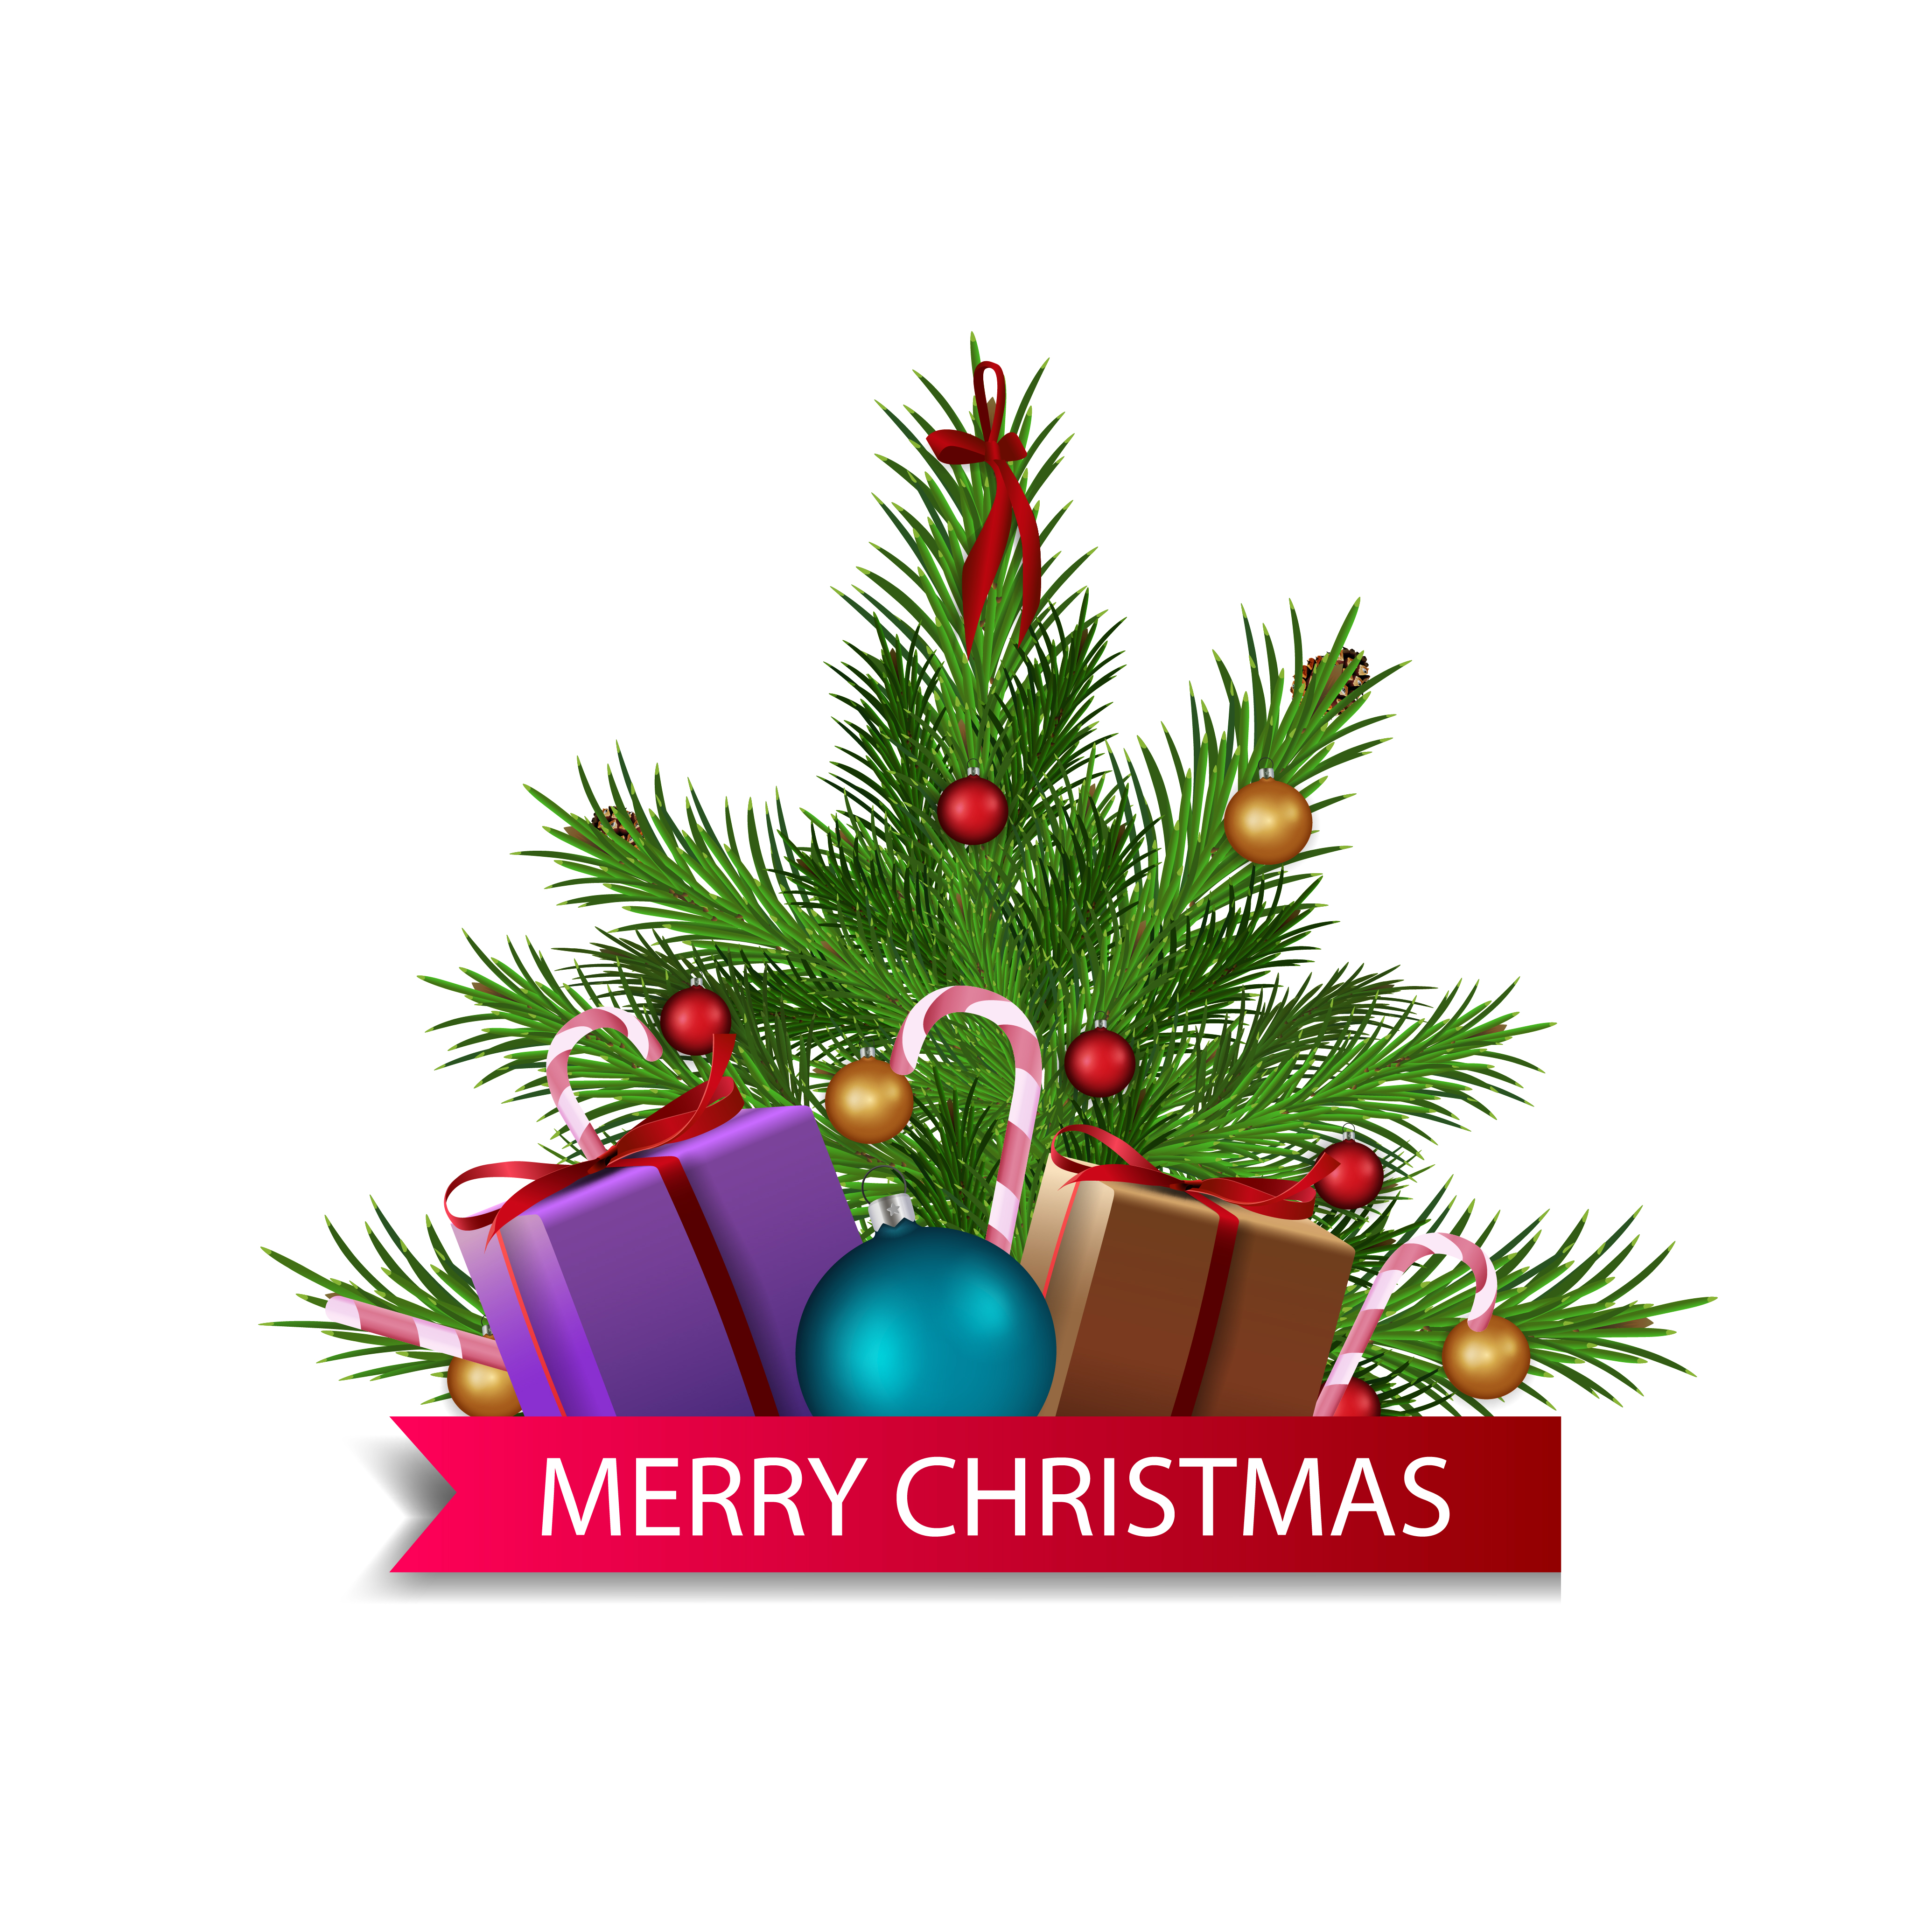 Cartoon Christmas Tree Decorated With Presents And Red Ribbon With Greeting Download Free Vectors Clipart Graphics Vector Art Woodand creatures have graphic and violent adventures. vecteezy